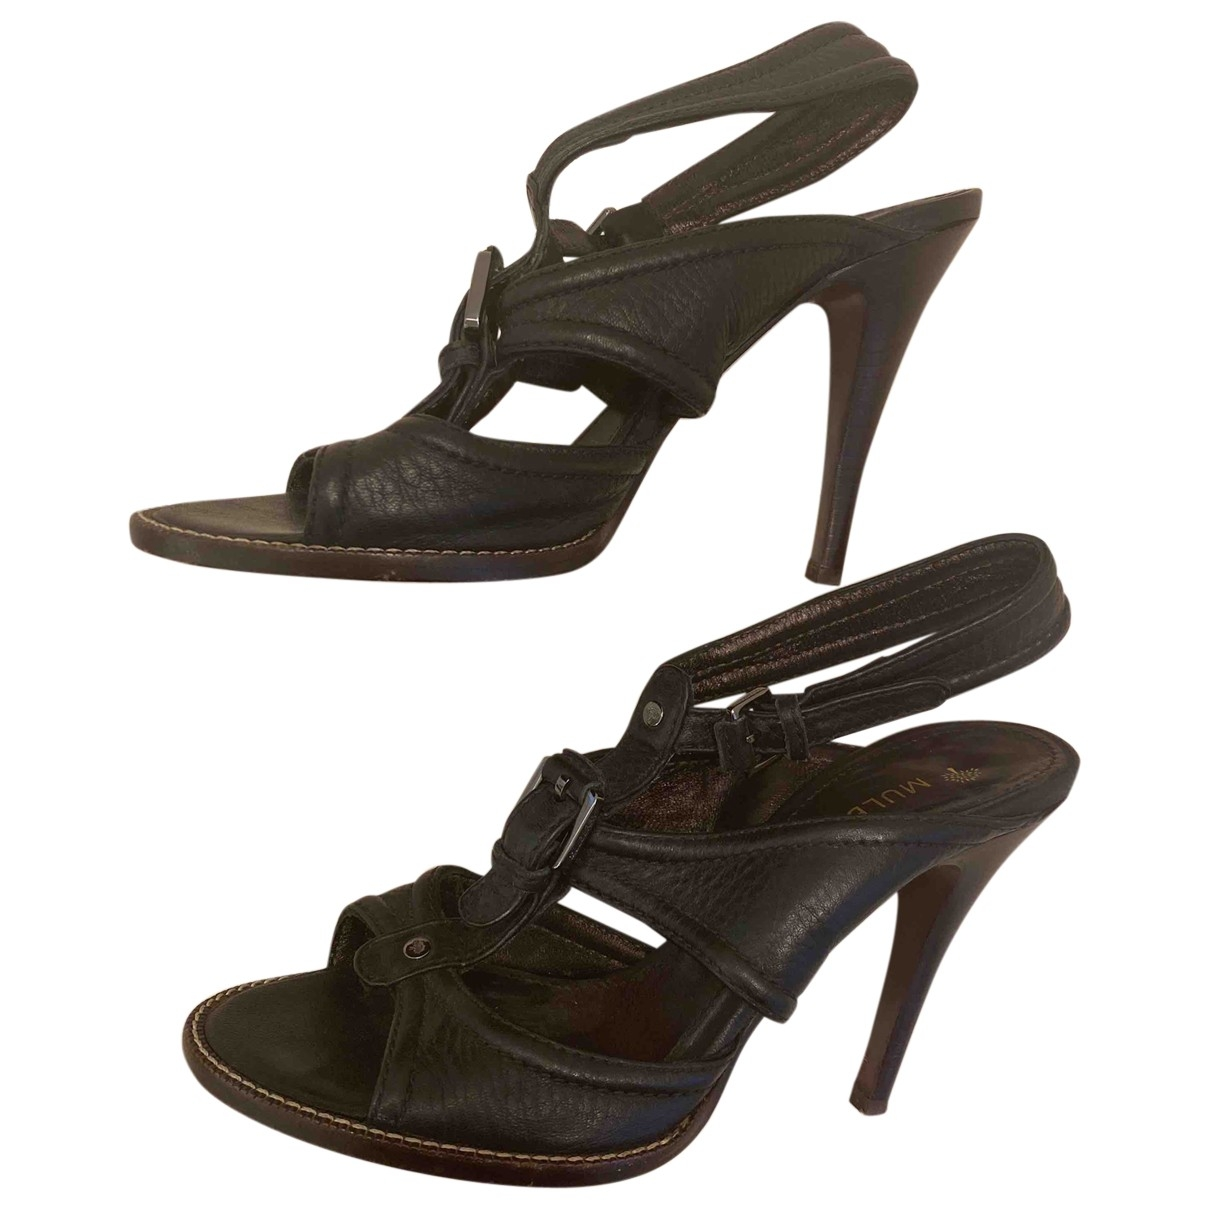 Mulberry \N Black Leather Sandals for Women 36 EU